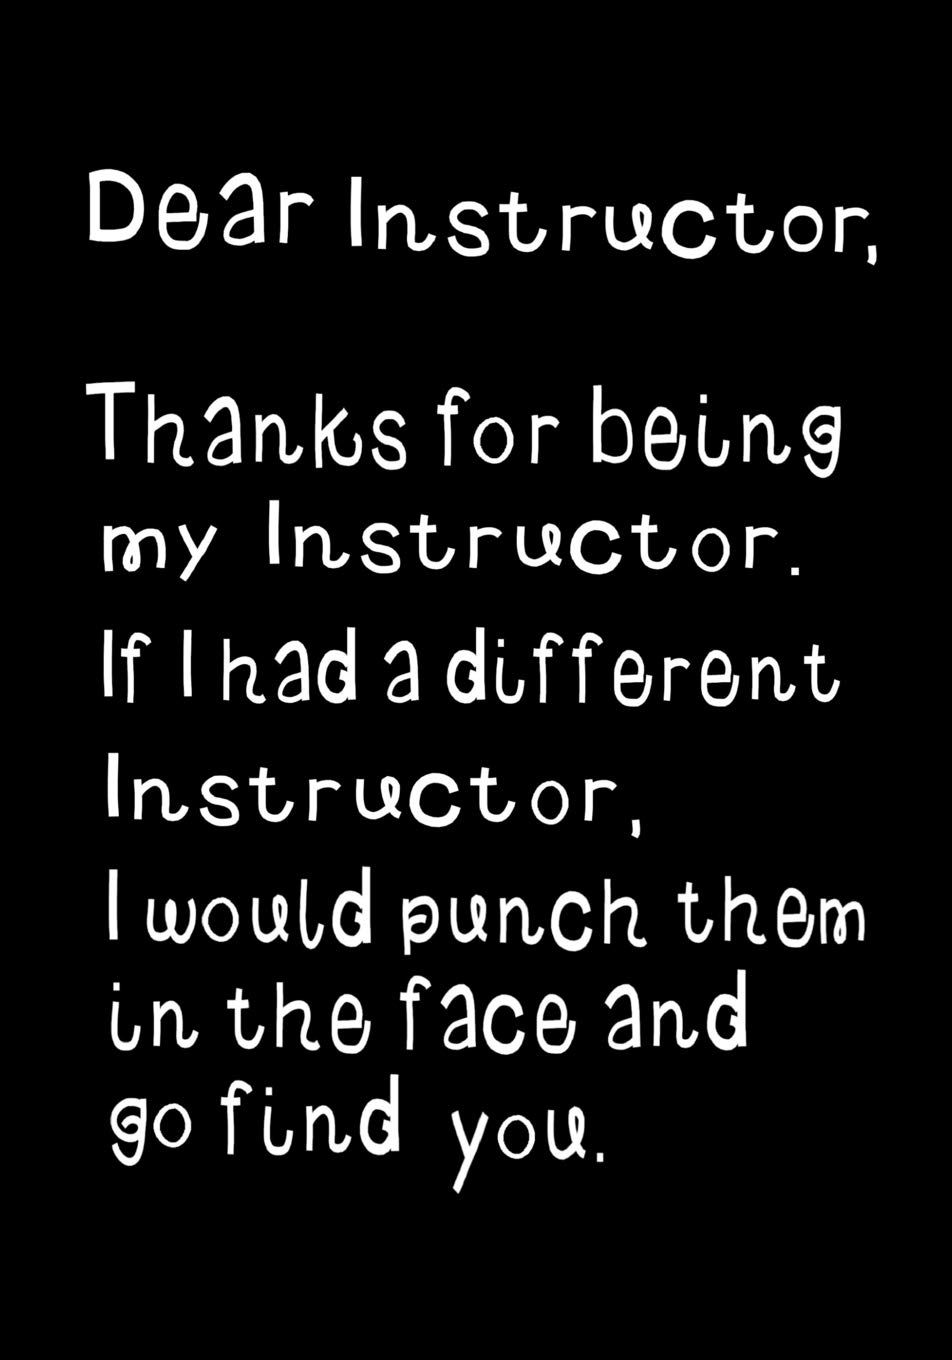 Image OfDear  Instructor, Thanks For Being My Instructor: Funny Humorous Present Or Gag Gift ~ Journal, Beautifully Lined Pages No...